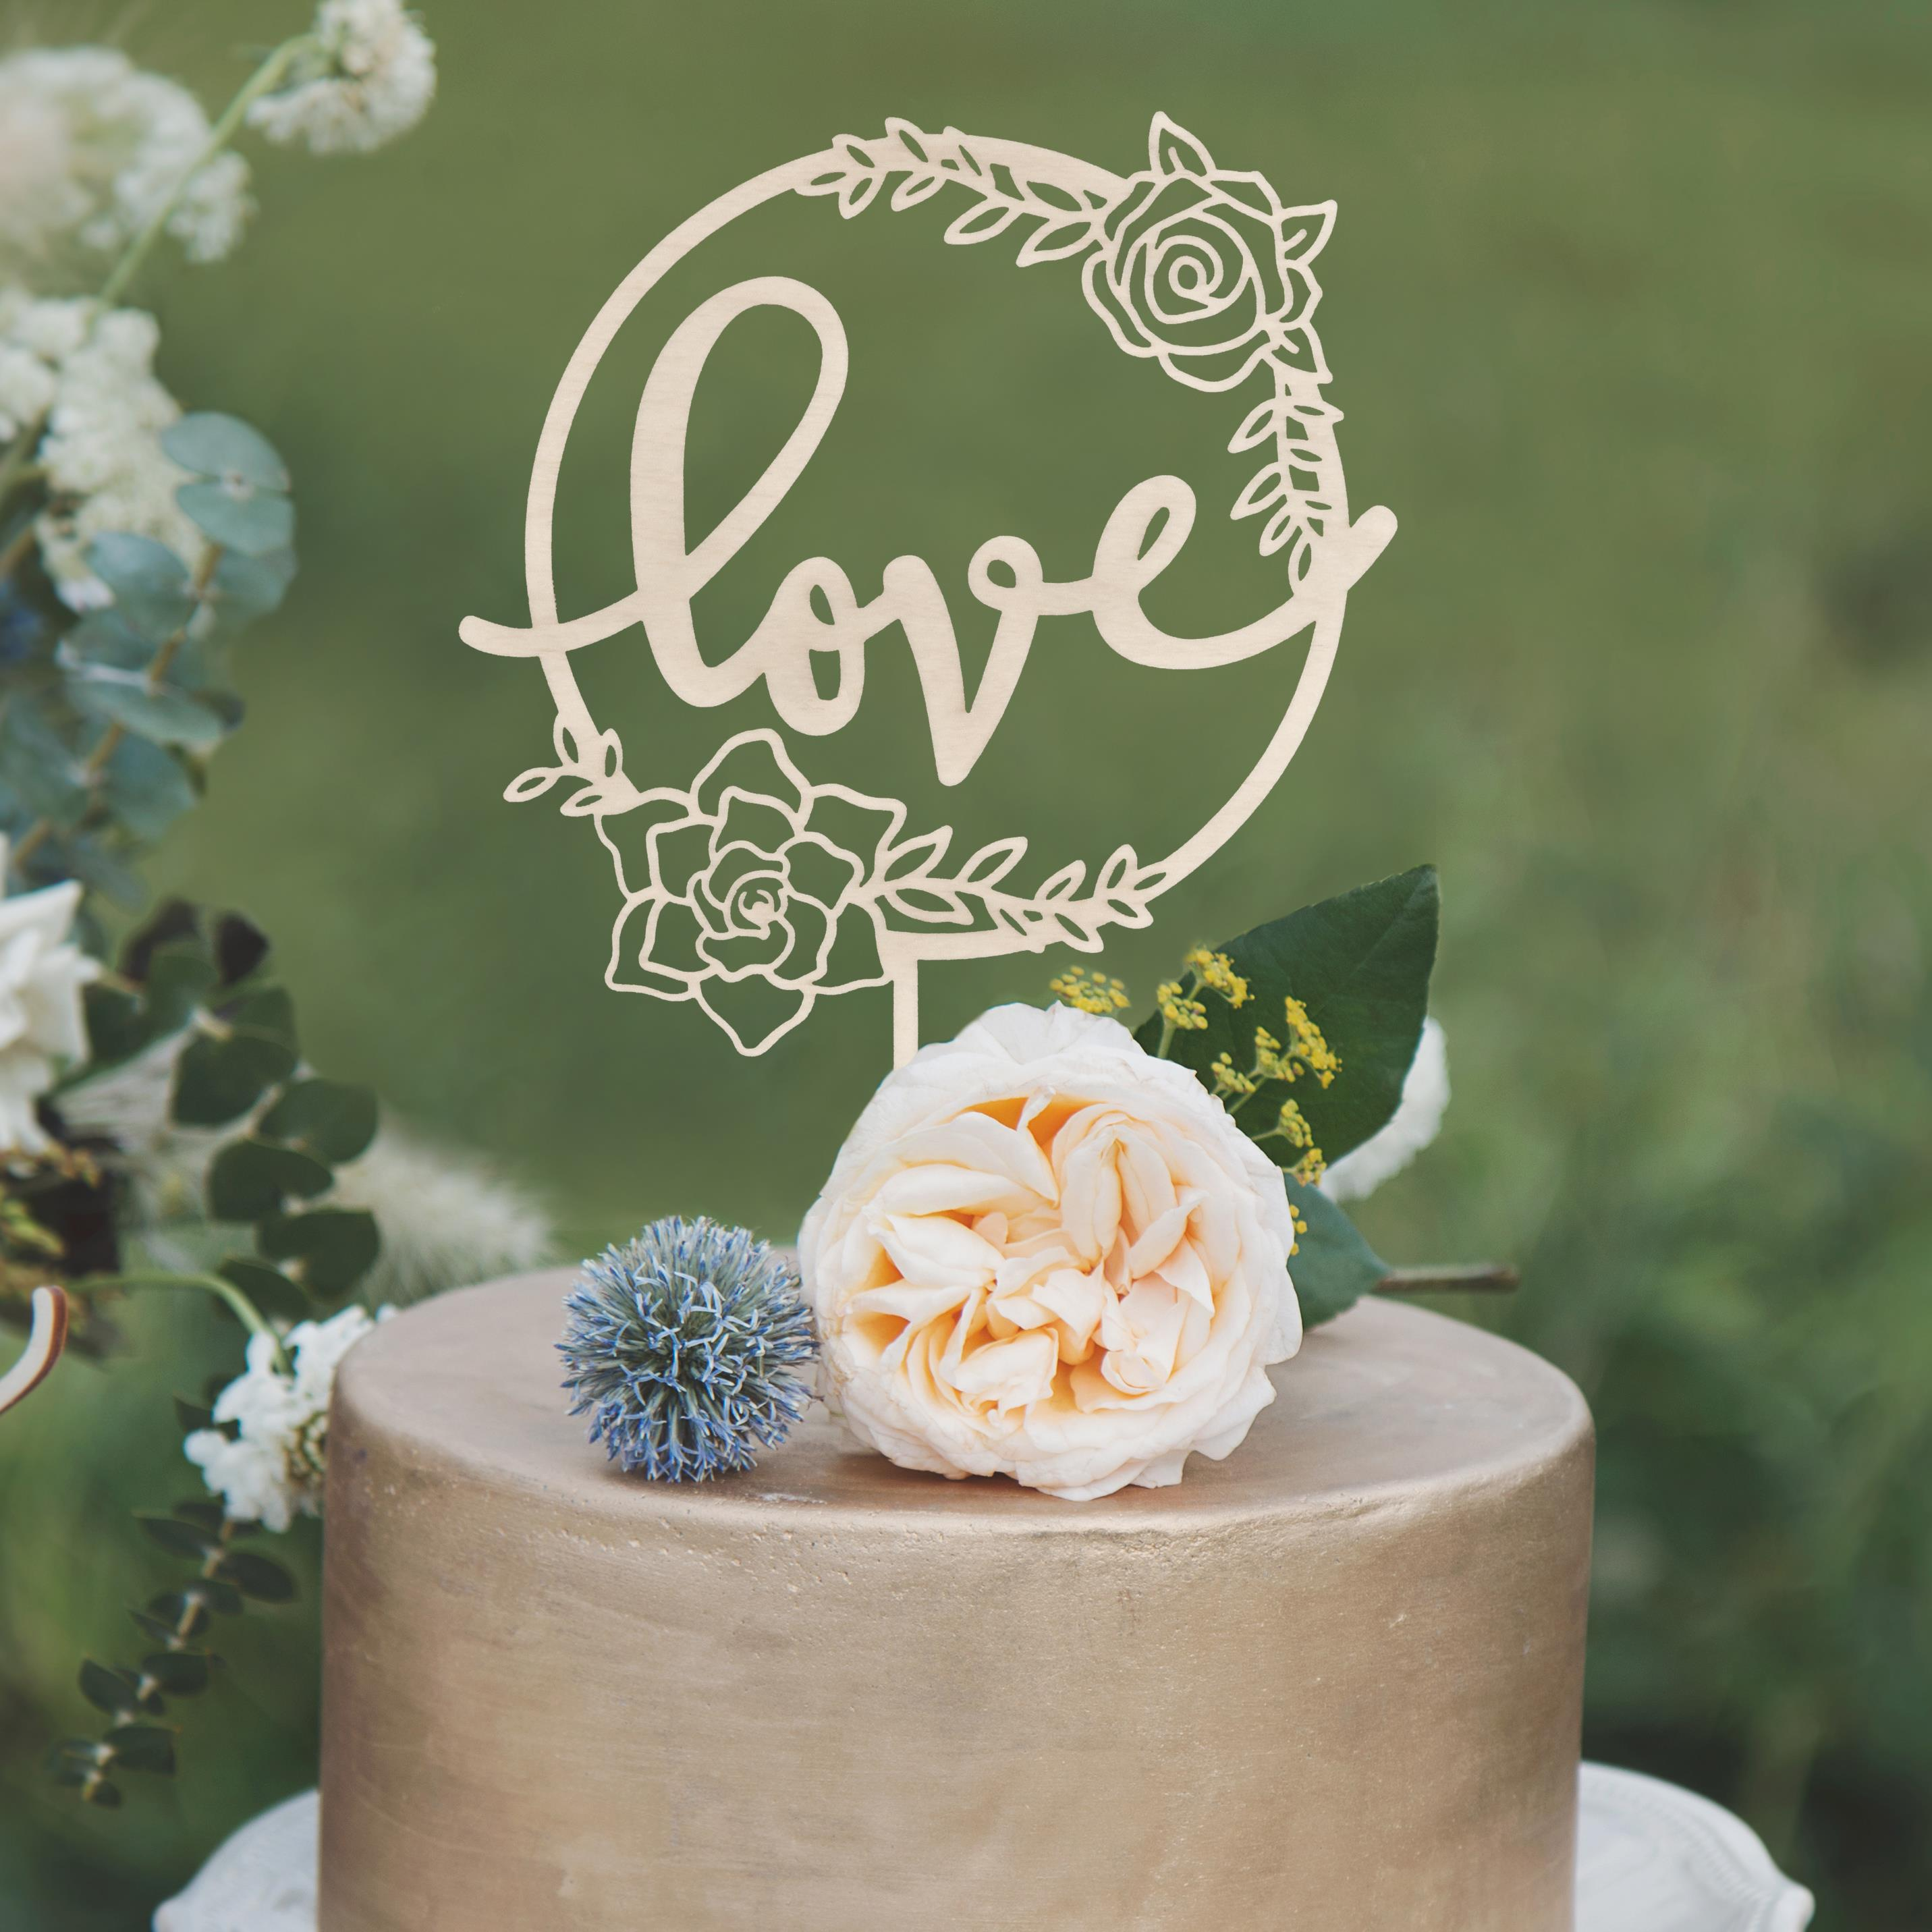 Love wedding cake topper by Thistle and Lace